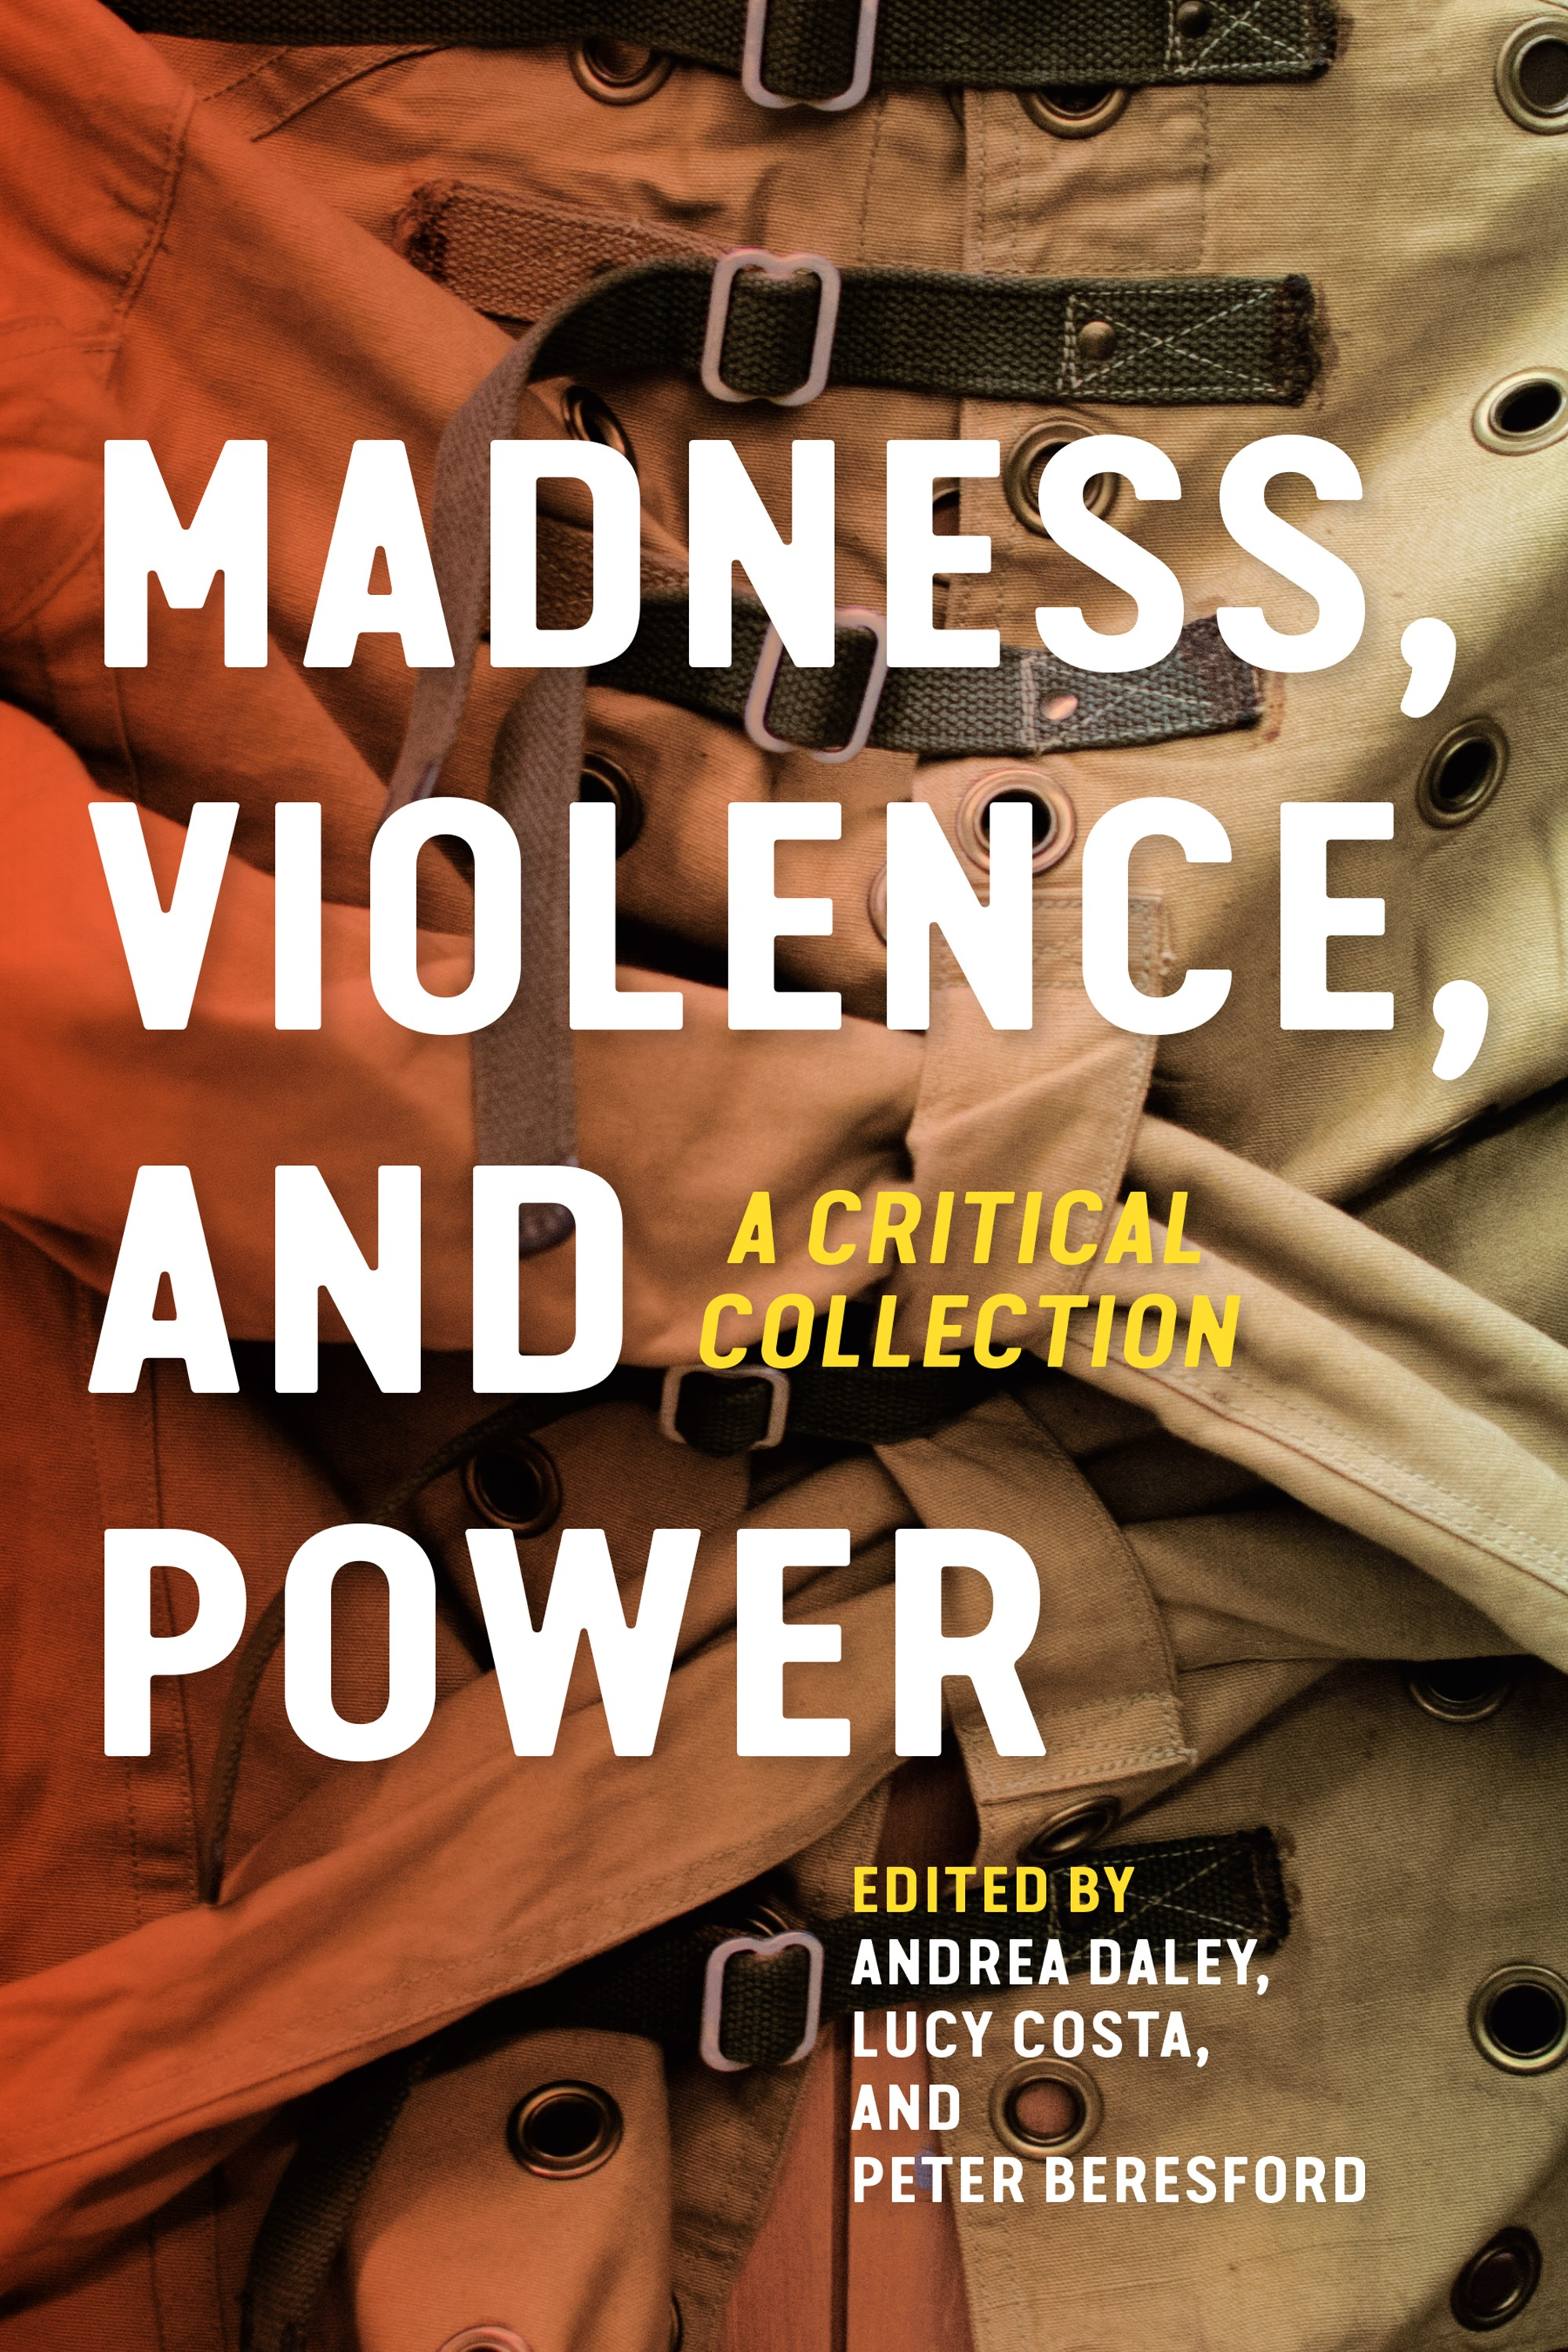 Book Cover: a brown straight jacket with the text: Madness, Violence, and Power: A Critical CollectionEdited by Andrea Daley, Lucy Costa, and Peter Beresford